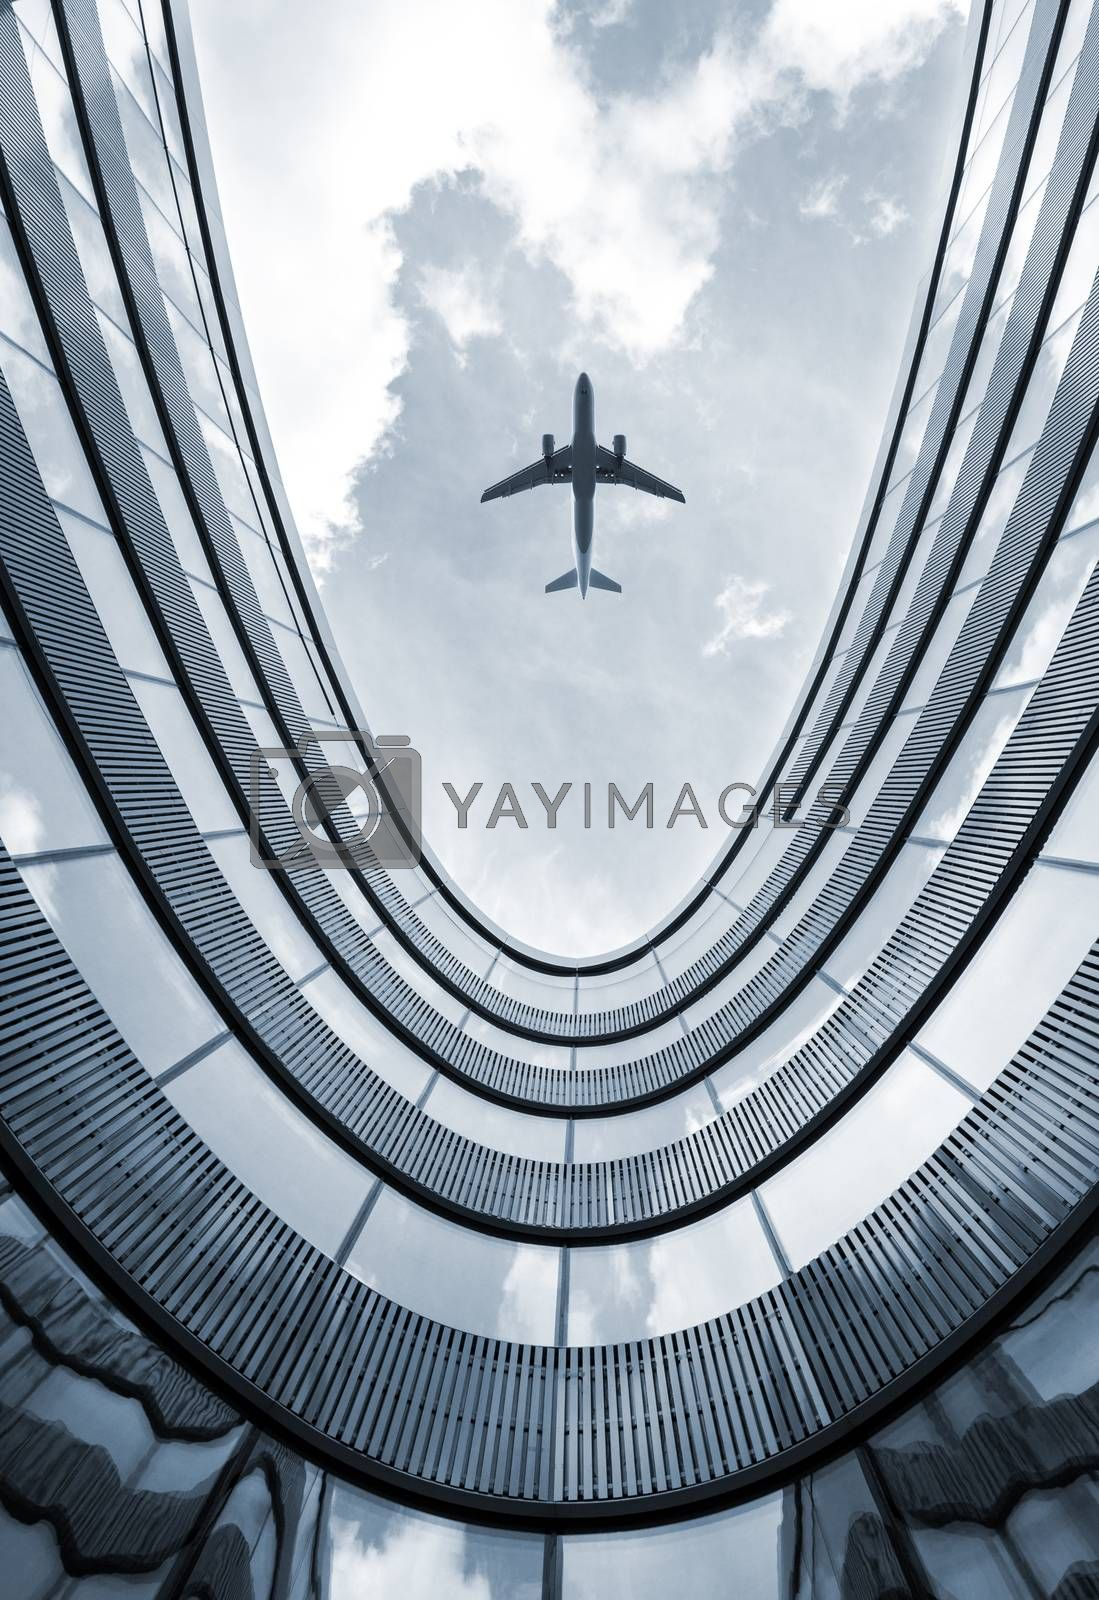 Modern architecture building with flying airplane in background. Low angle view blue colorized picture.